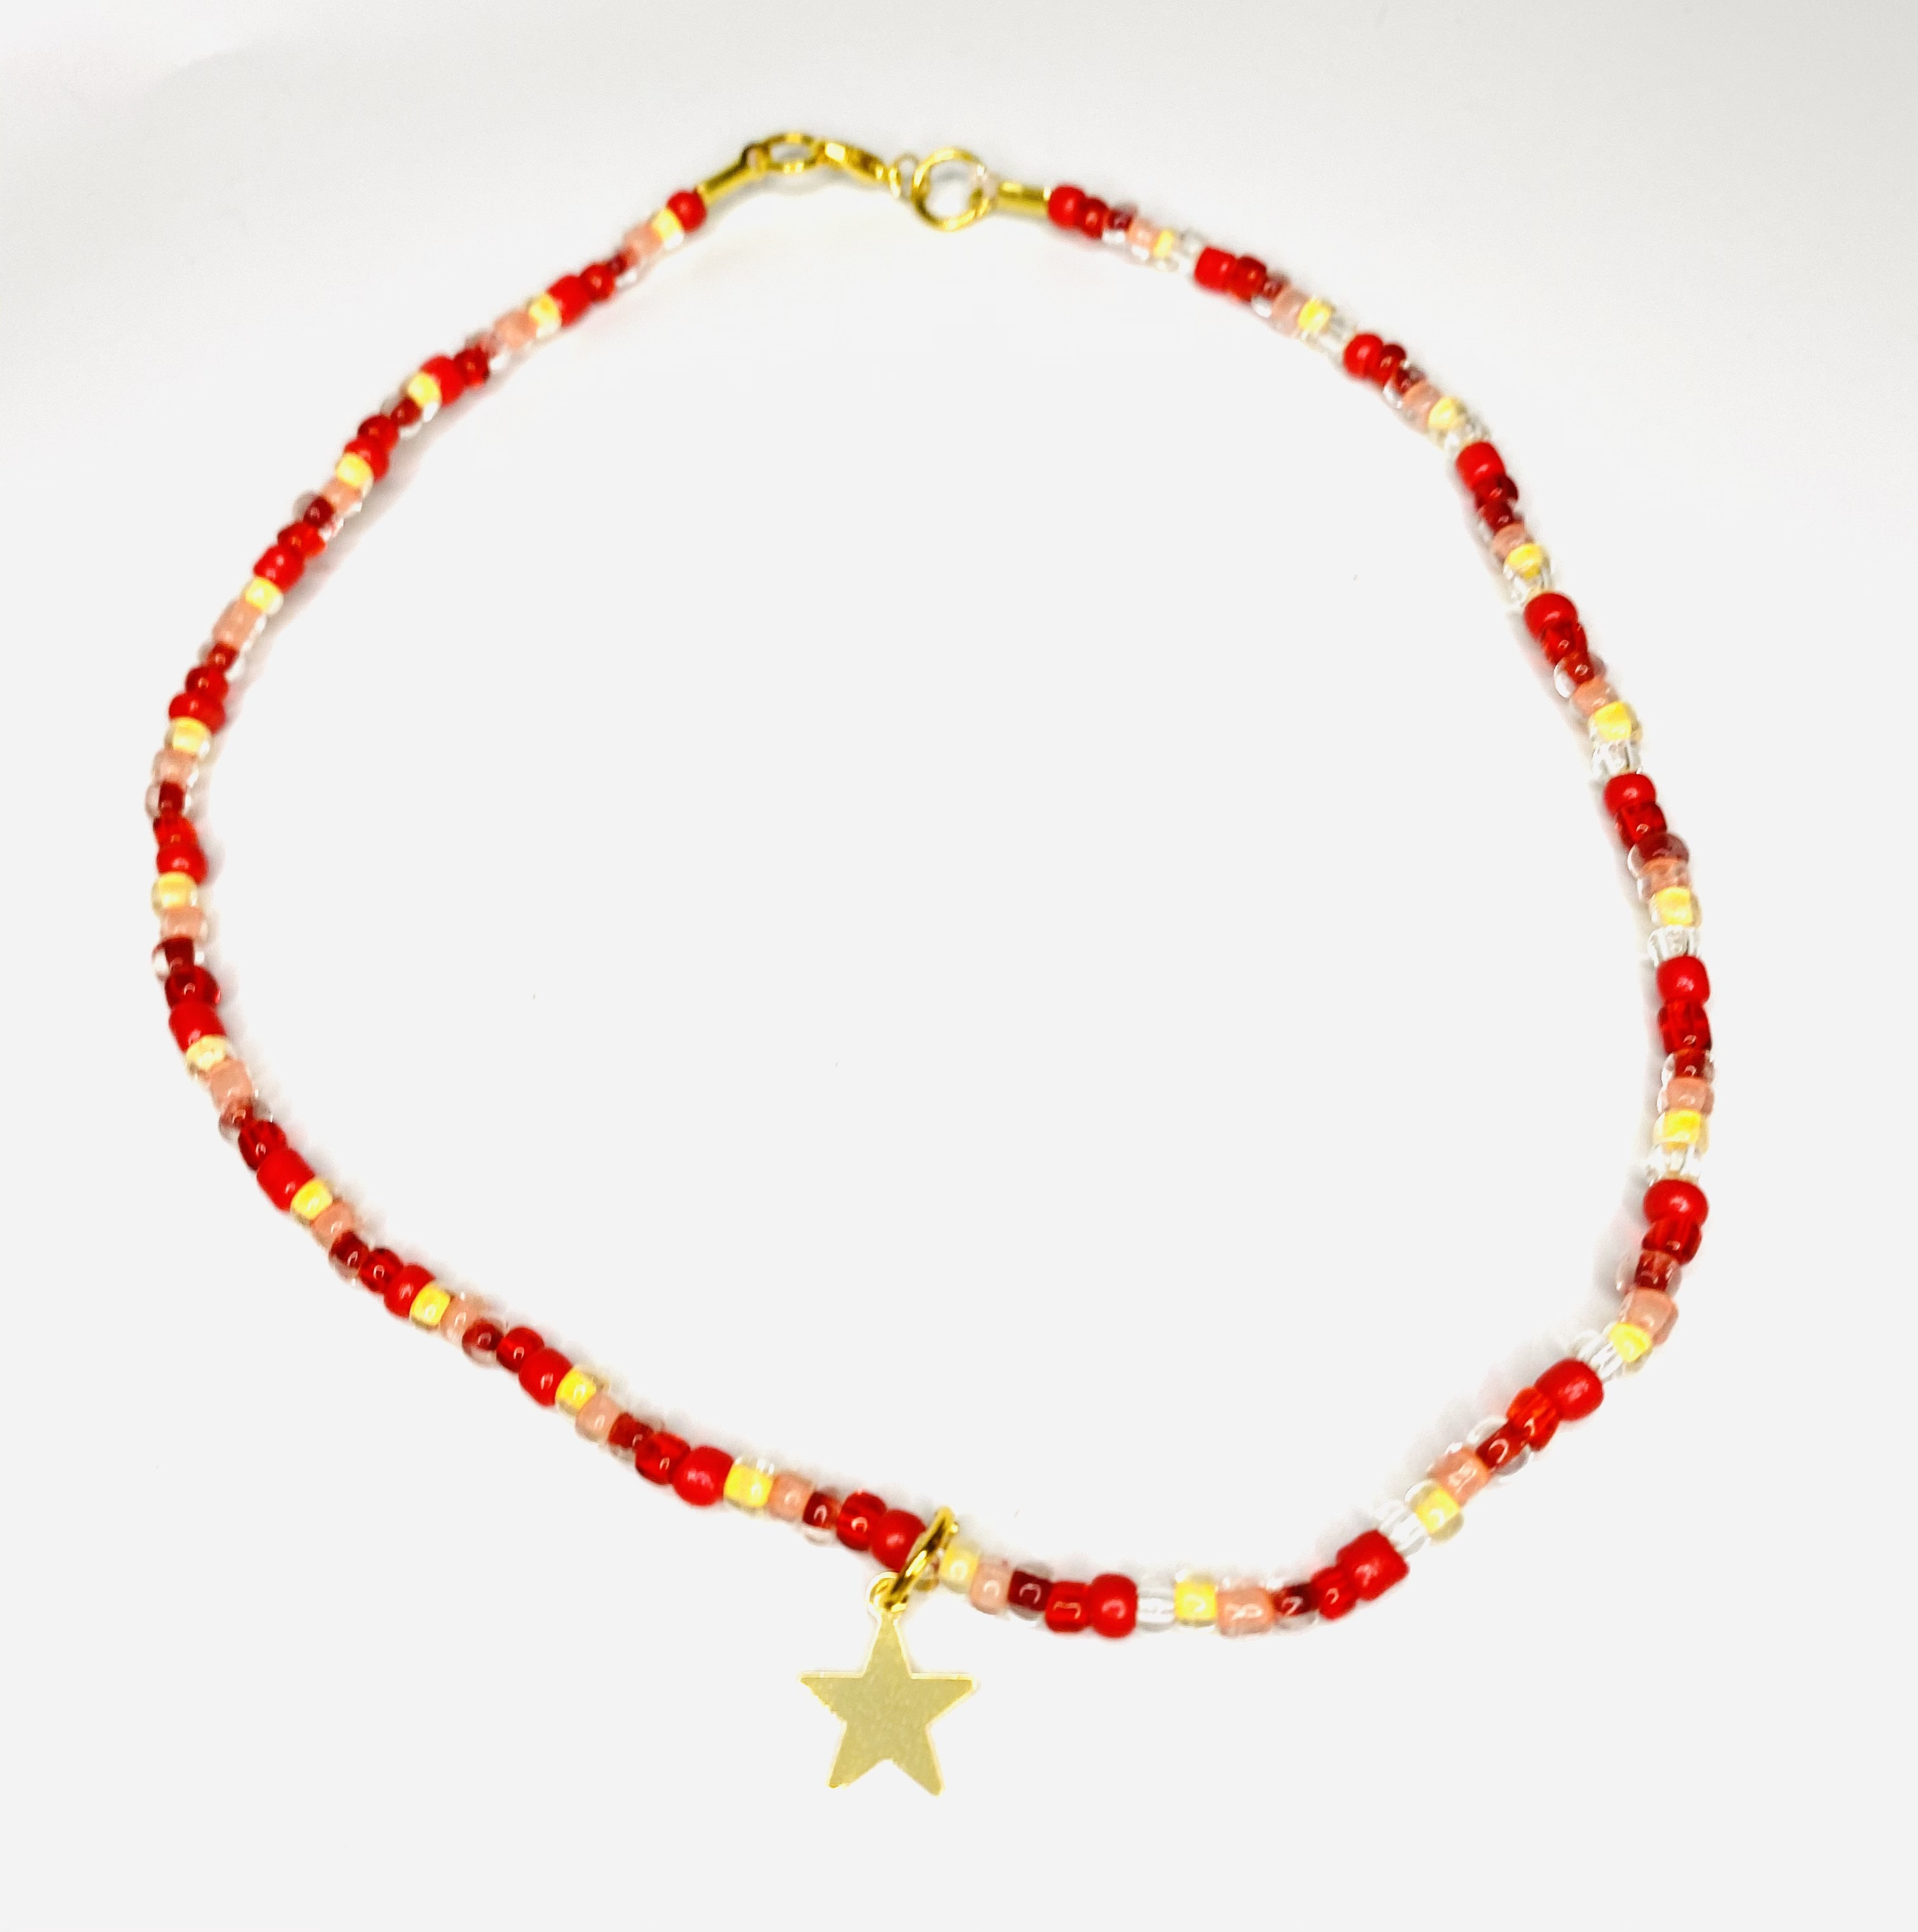 Beaded Red & Yellow Necklace with Star Charm